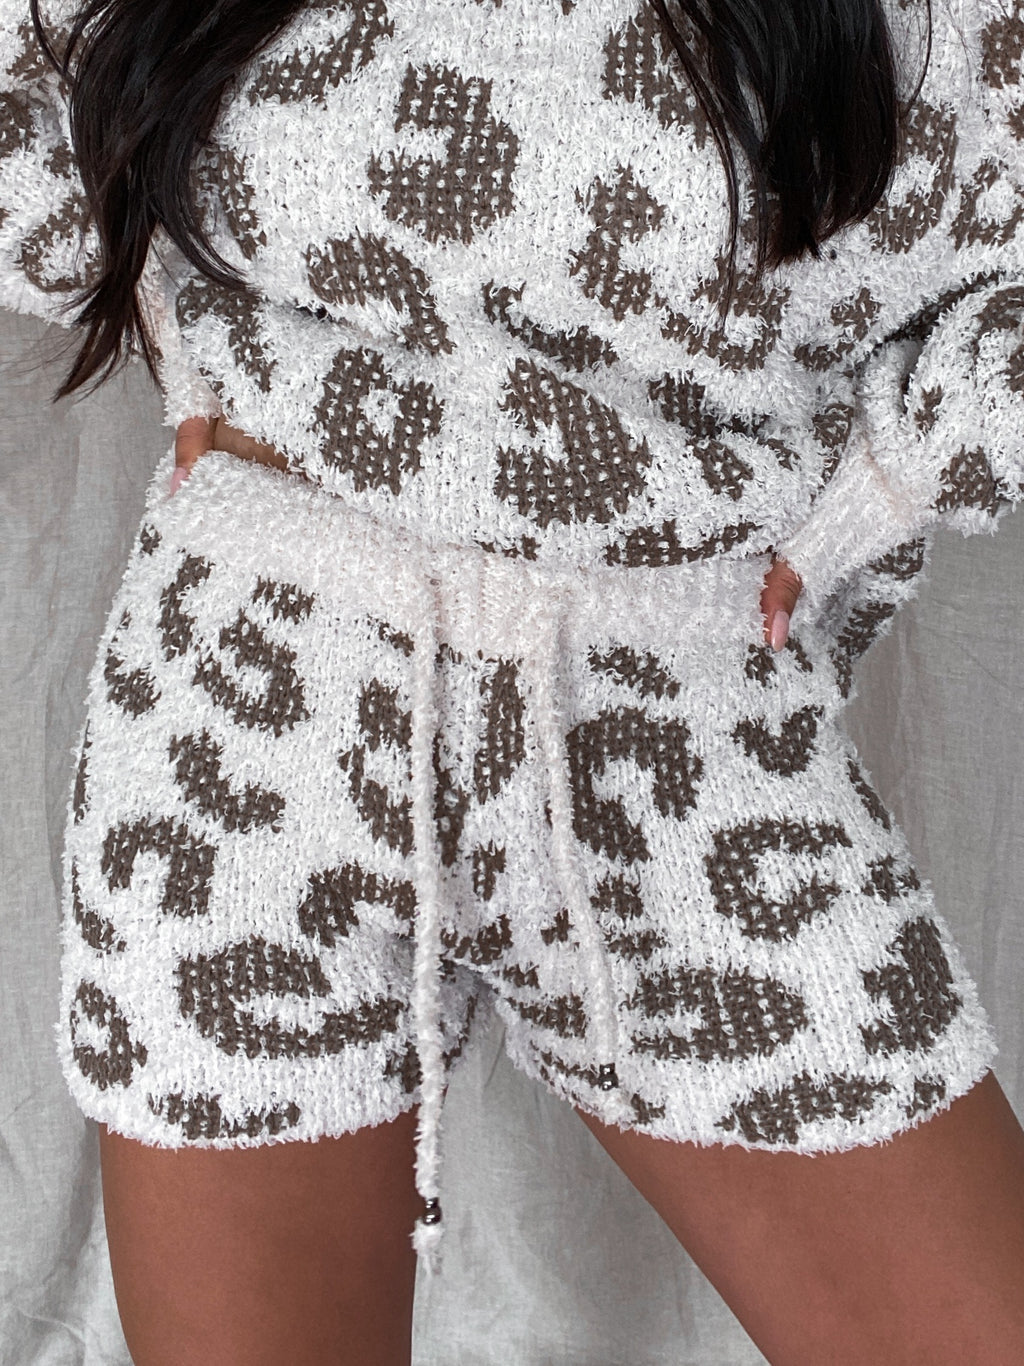 Wild Dreams Shorts: Leopard